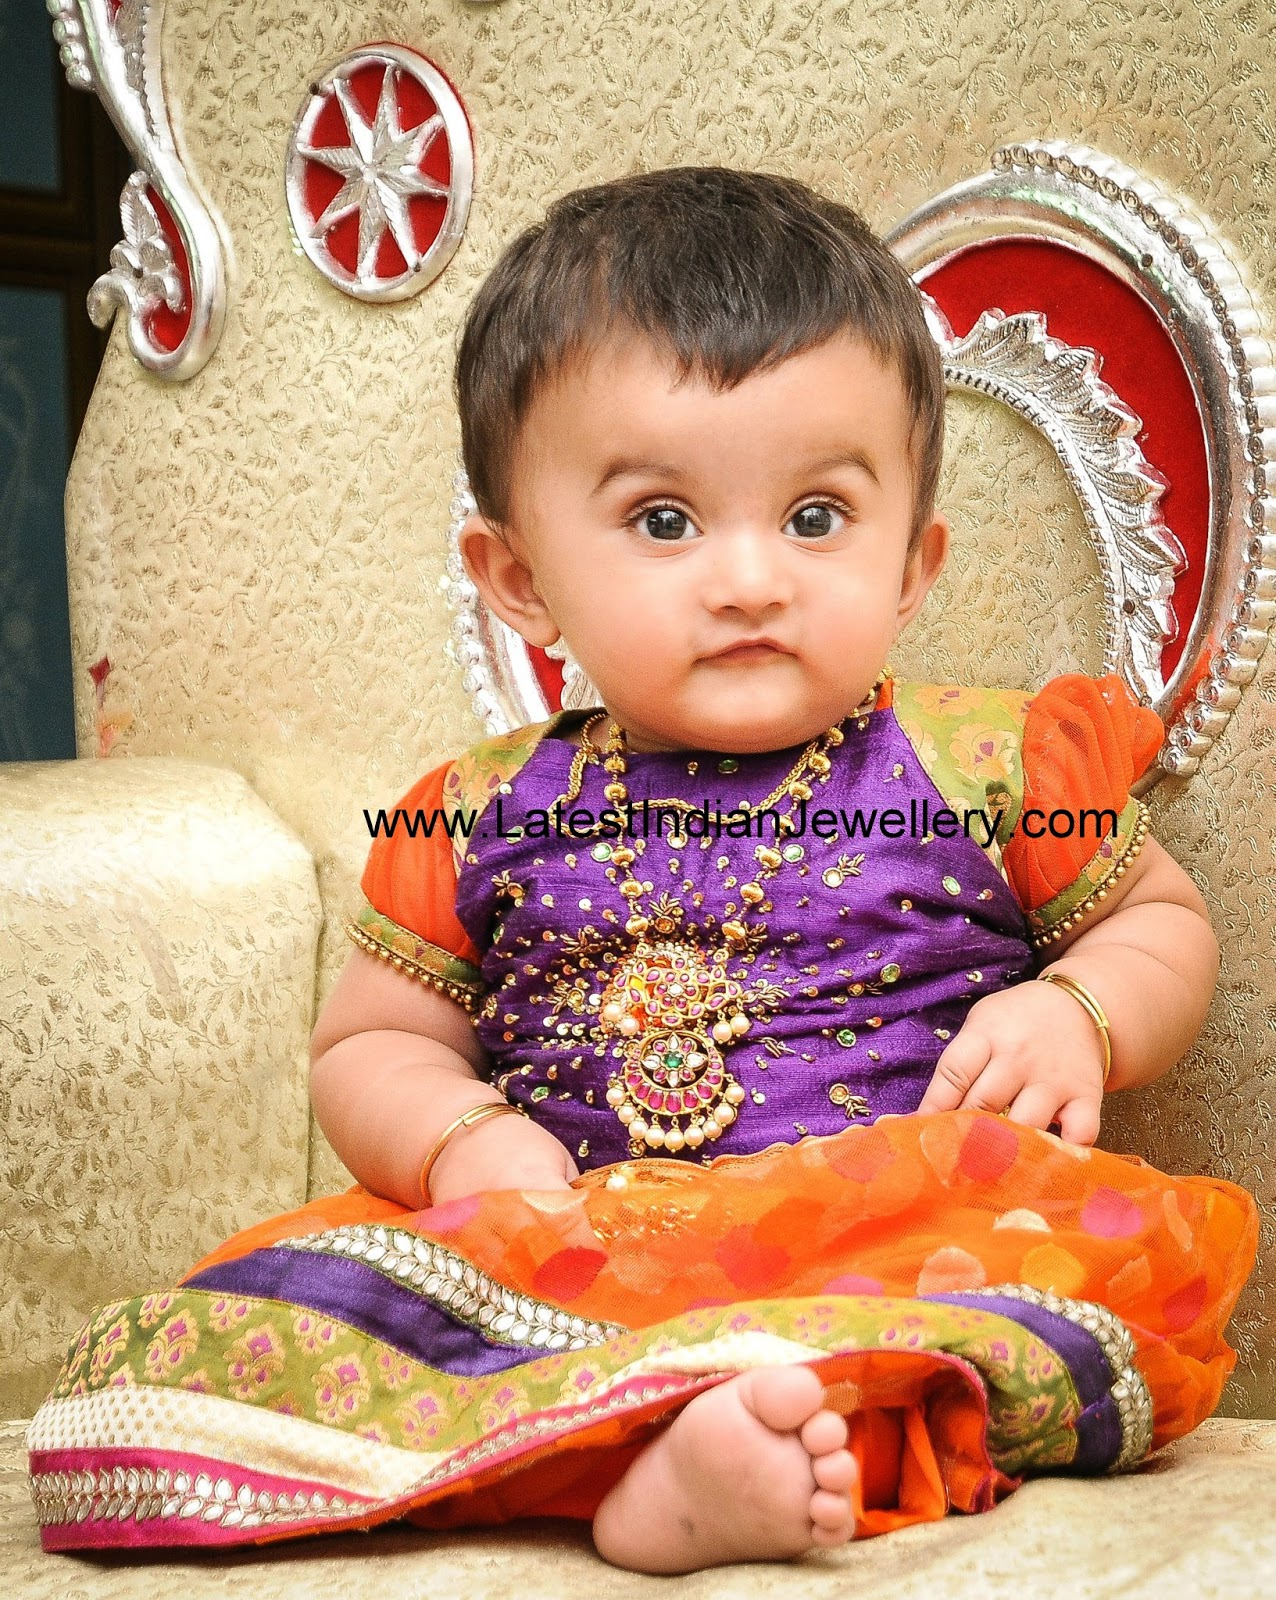 Cute Gold Baby Jewellery